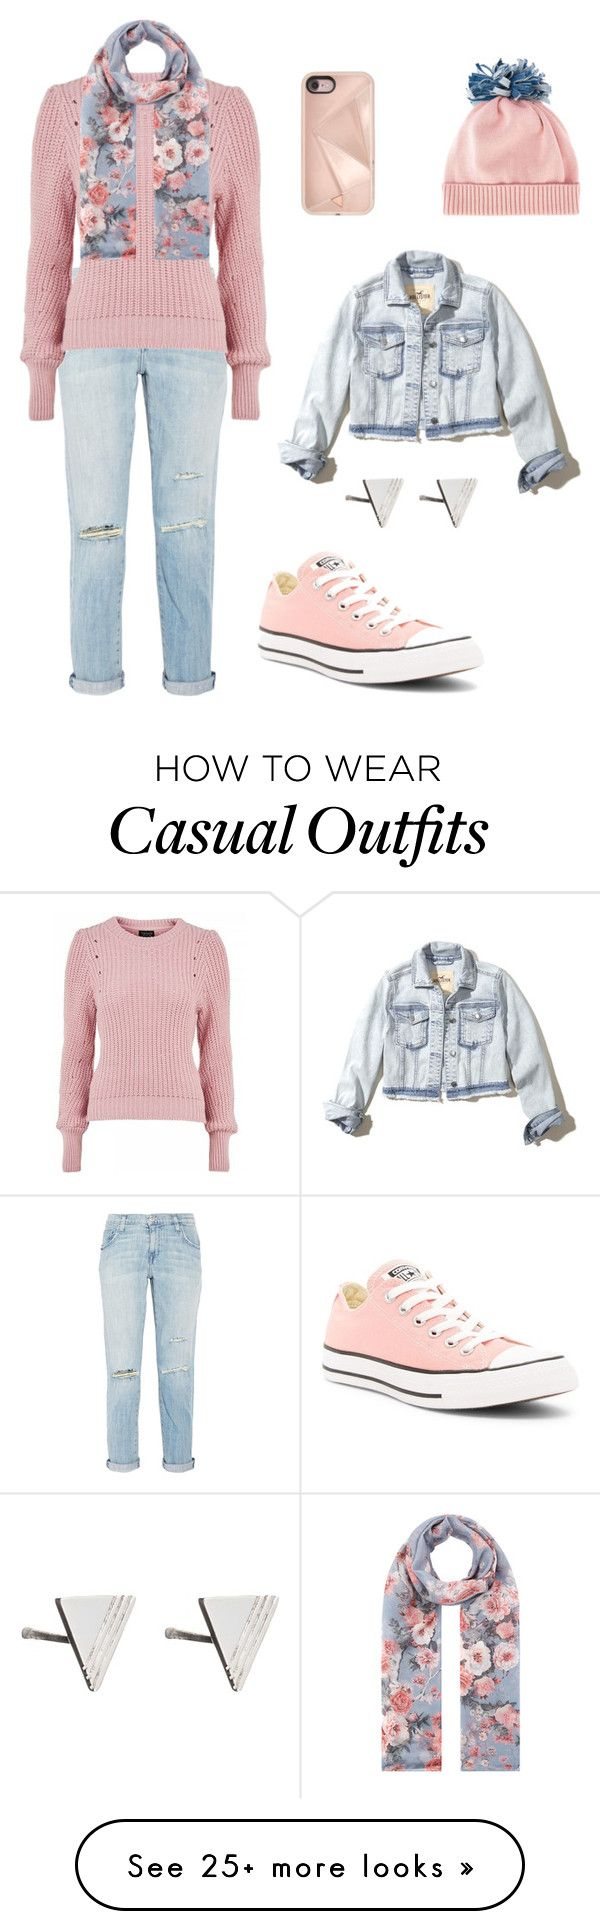 """""""Casual"""" by dr3amd0ll on Polyvore featuring Current/Elliott, Topshop, Accessorize, Converse, Rebecca Minkoff, Federica Moretti, Hollister Co. and Rachel Jackson"""